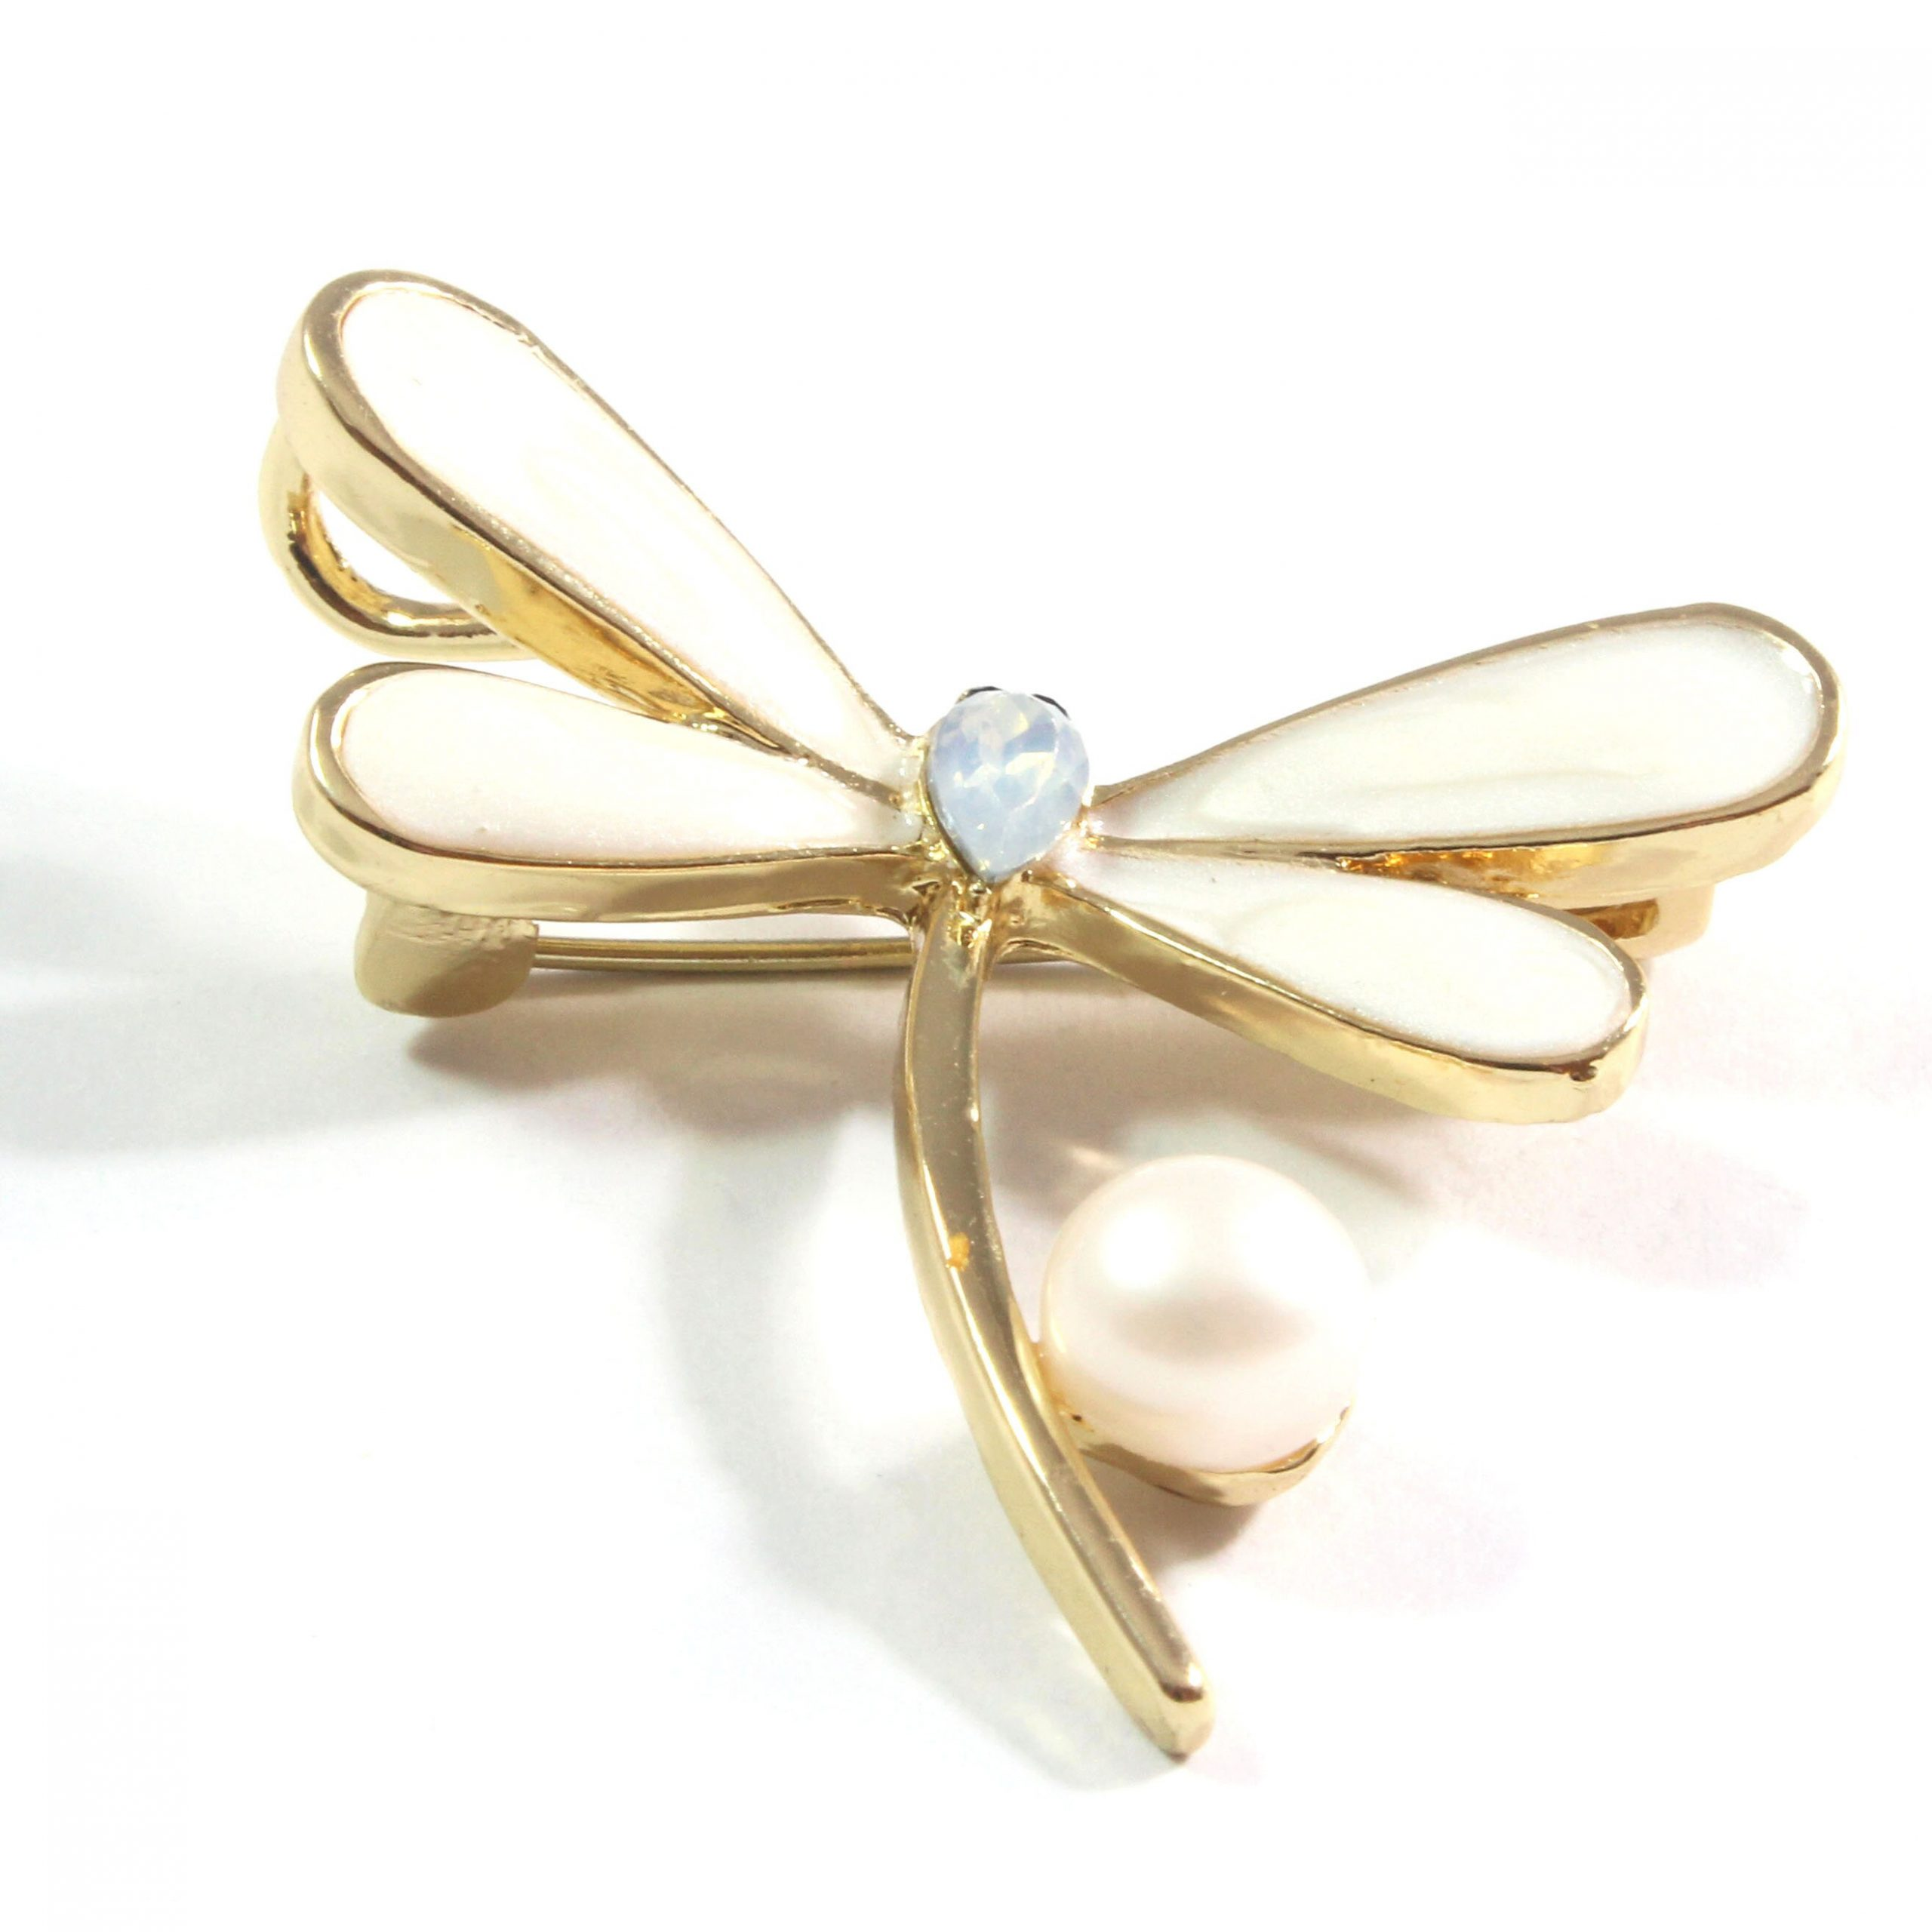 White Dragonfly Freshwater Cultured Pearl Brooch 7.5-8.0mm